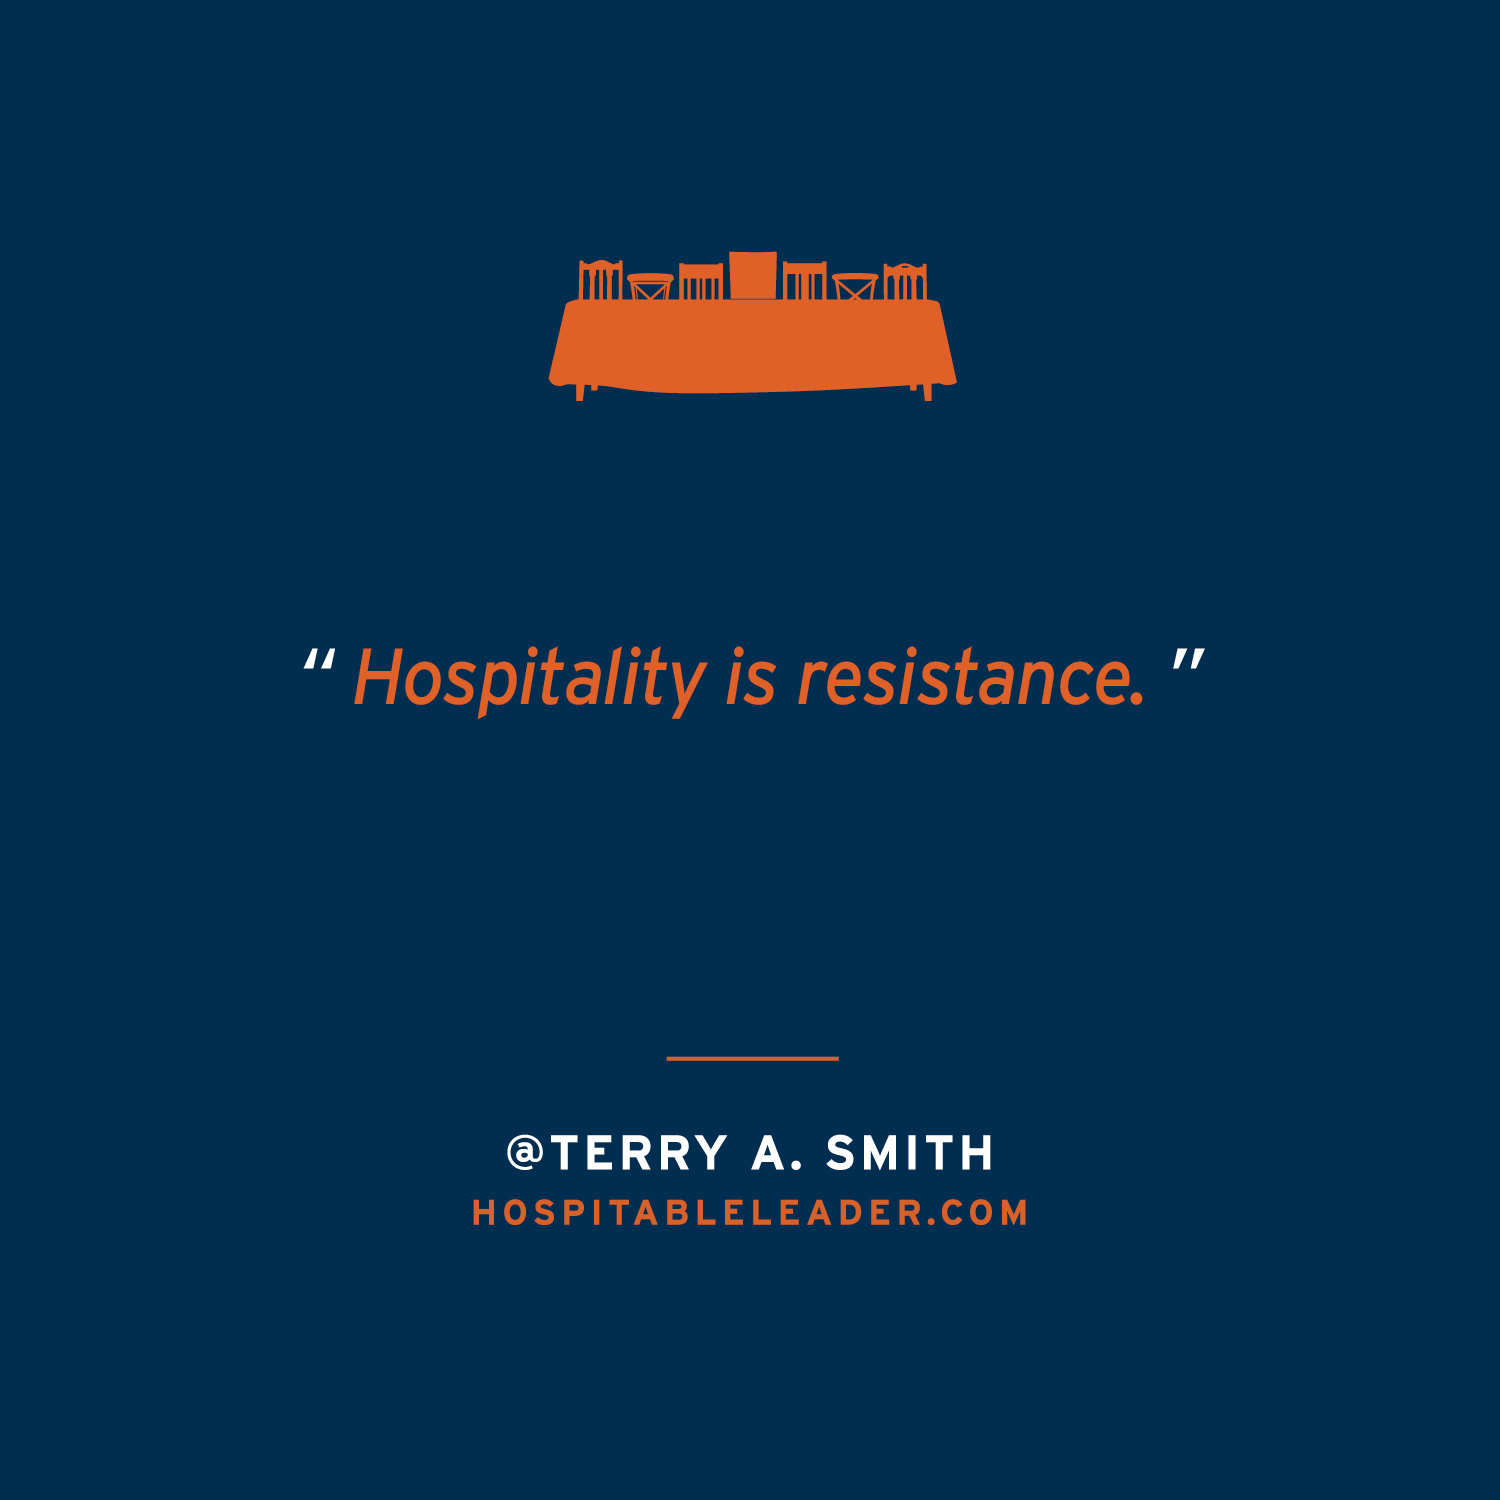 In a culture that has become more and more divisive, simply welcoming in a stranger can become an act of resistance. Jesus did this throughout his ministry. It's a leadership style that Terry Smith unpacks in his newest book The Hospitable Leader. Learn more at HospitableLeader.com.